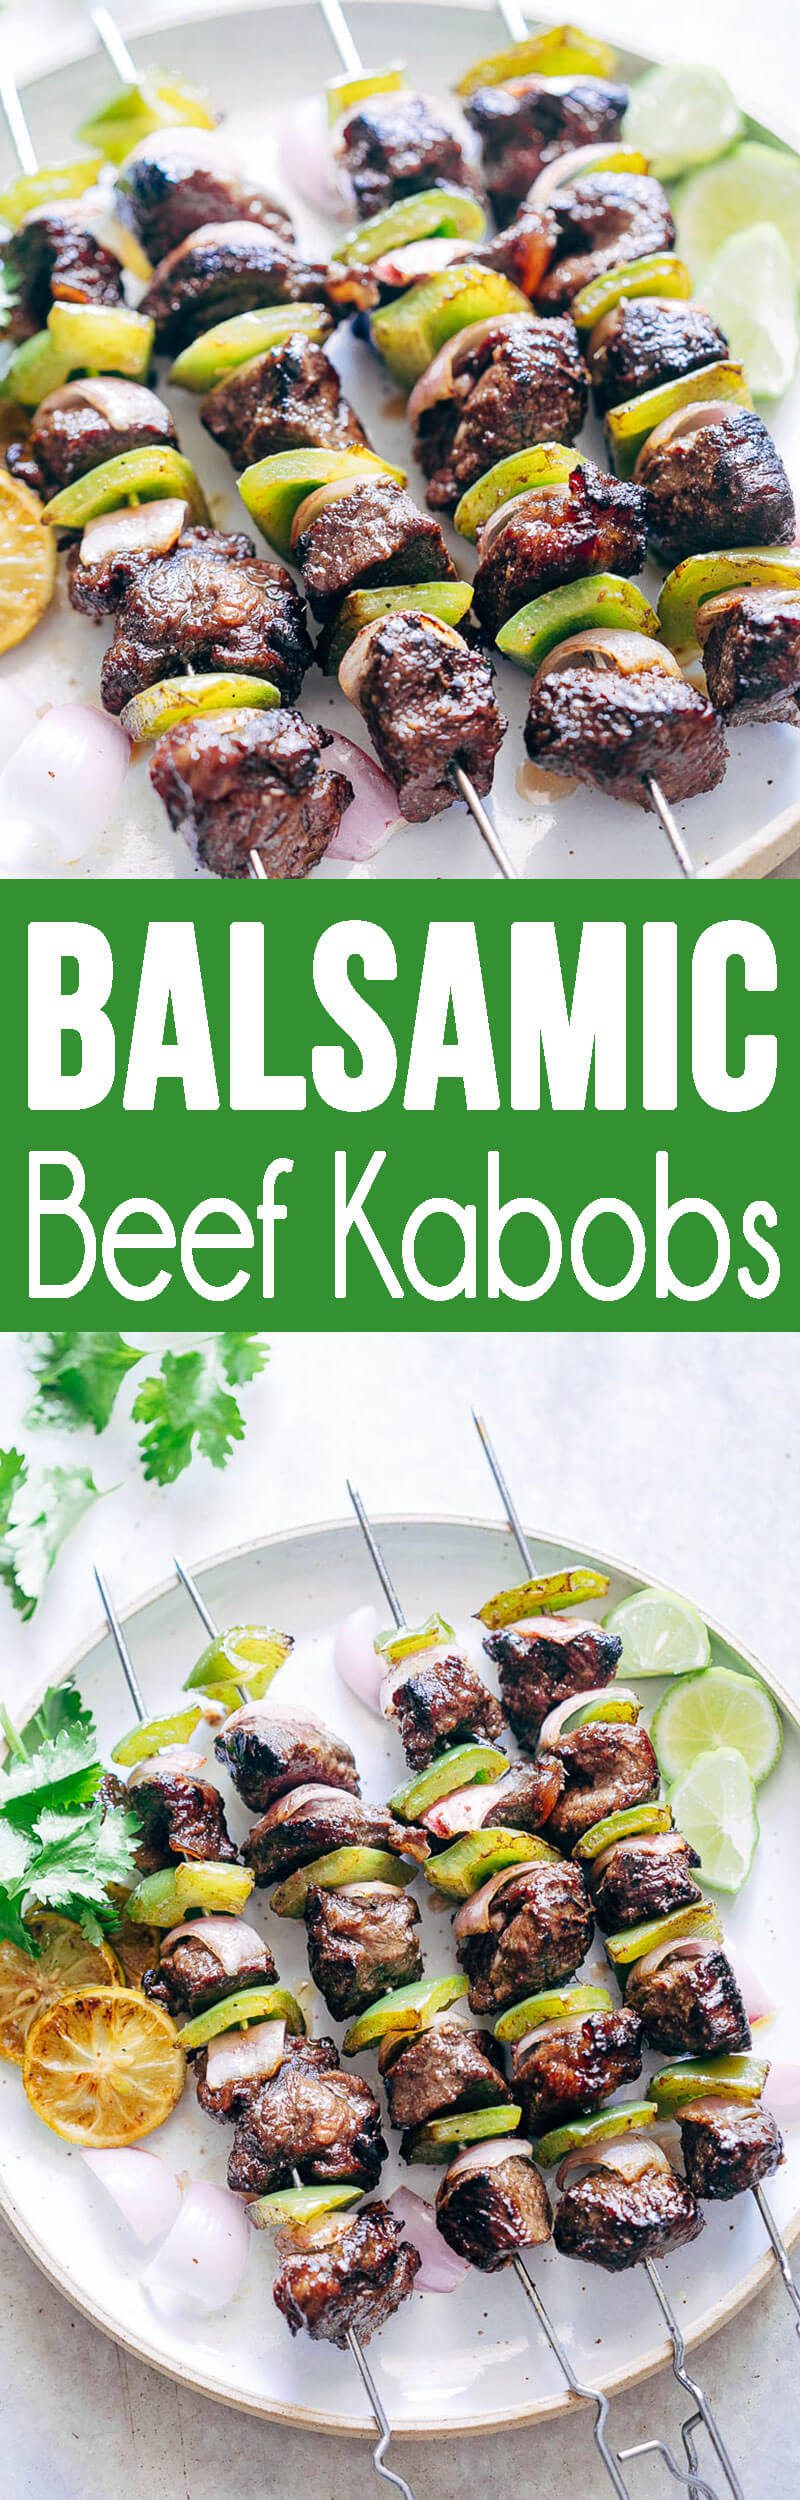 Balsamic Rosemary Beef Kabobs are flavorful, grilled, and delicious